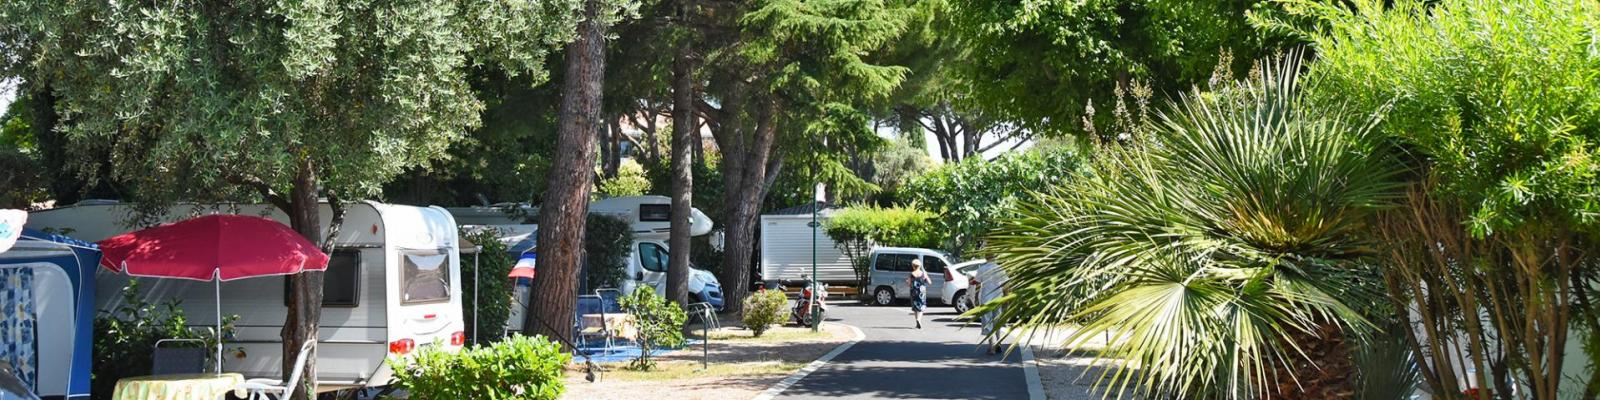 actualites vacances camping cannes